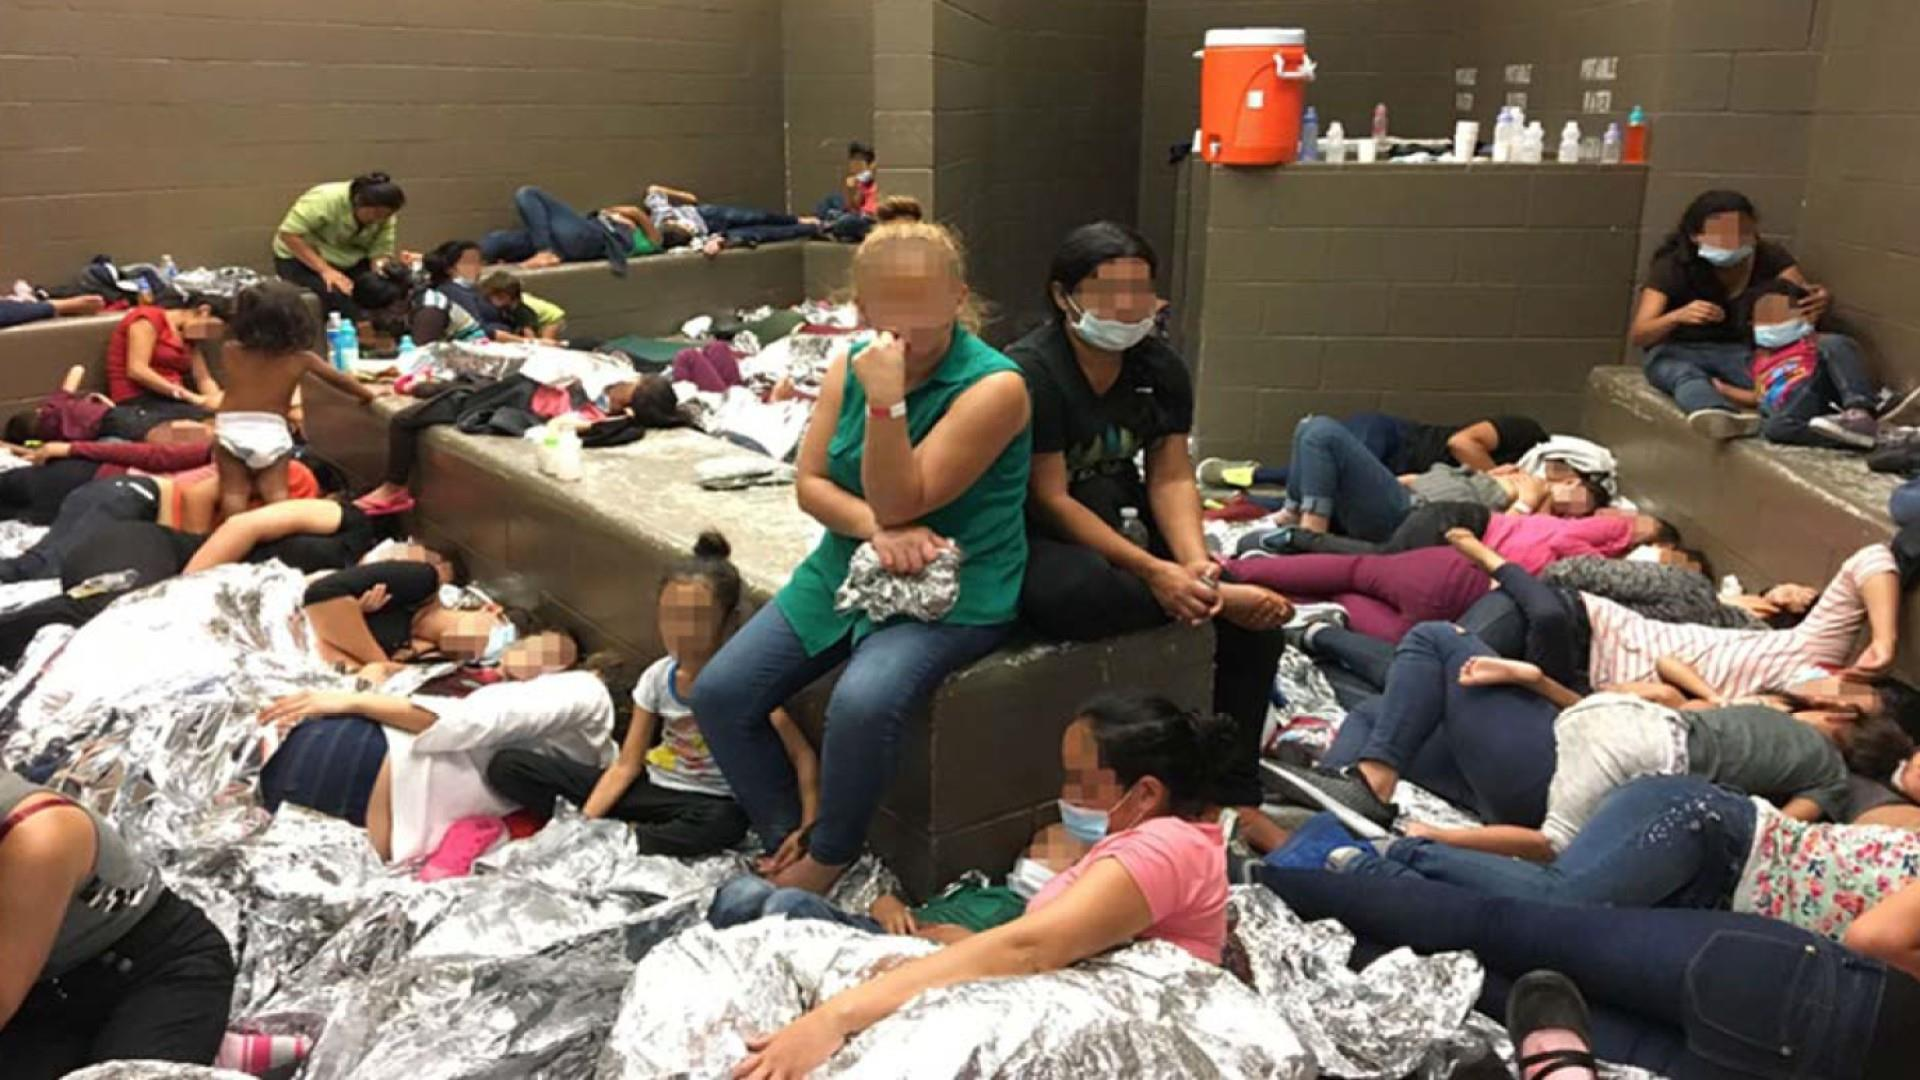 Trump plans tanks and fireworks as govt. photos show migrants in dire conditions